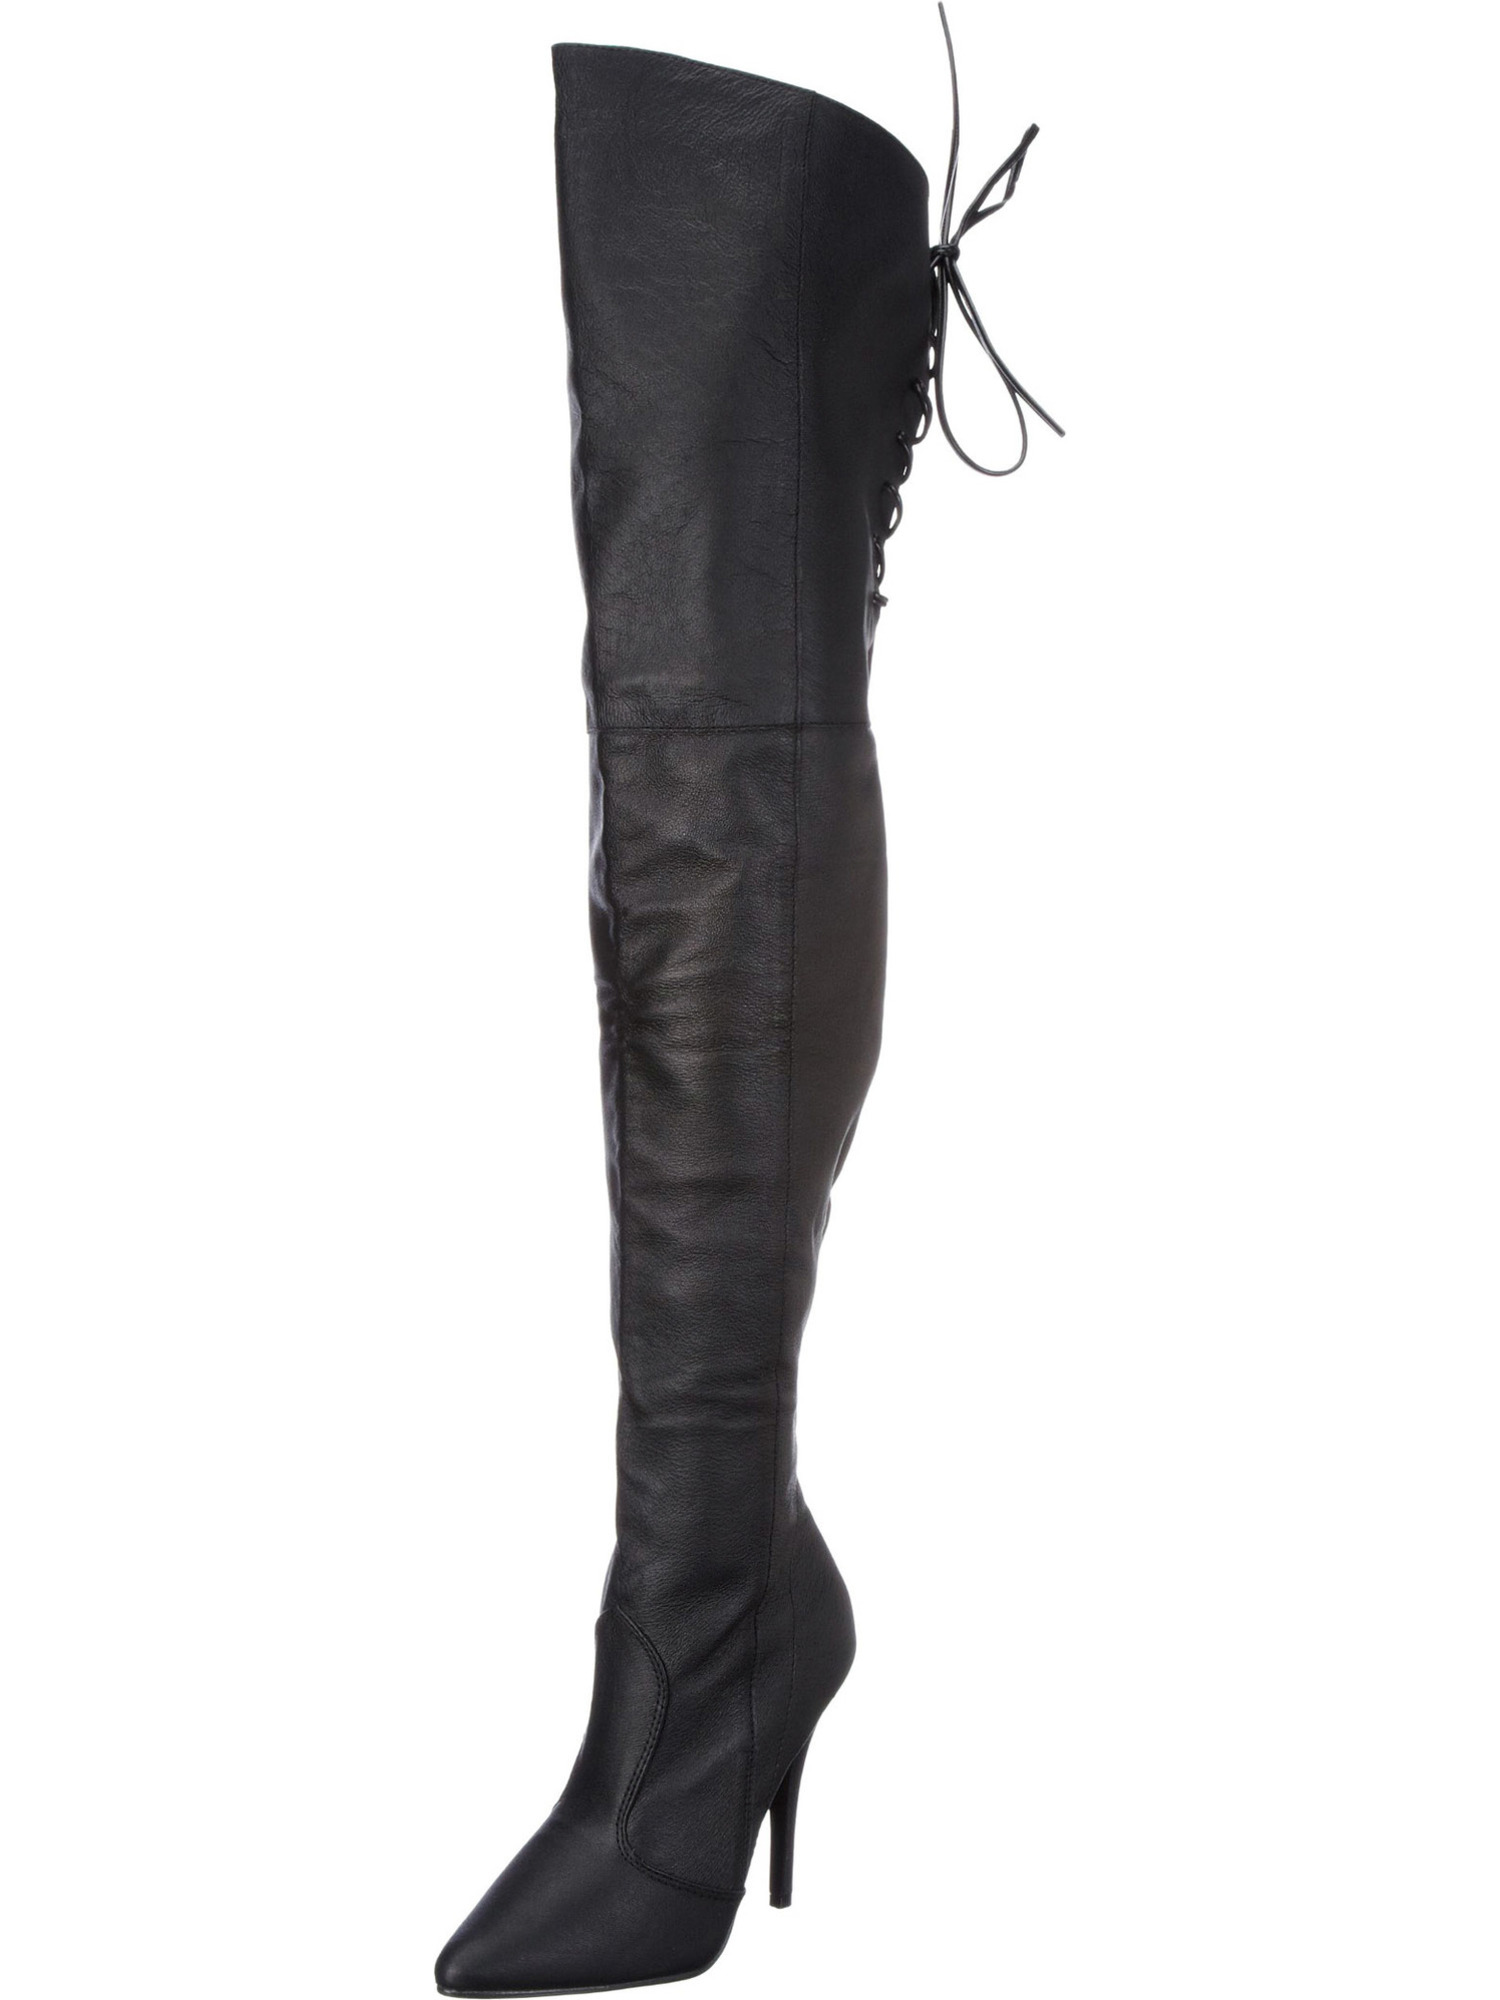 Womens Black Over the Knee Boots Thigh